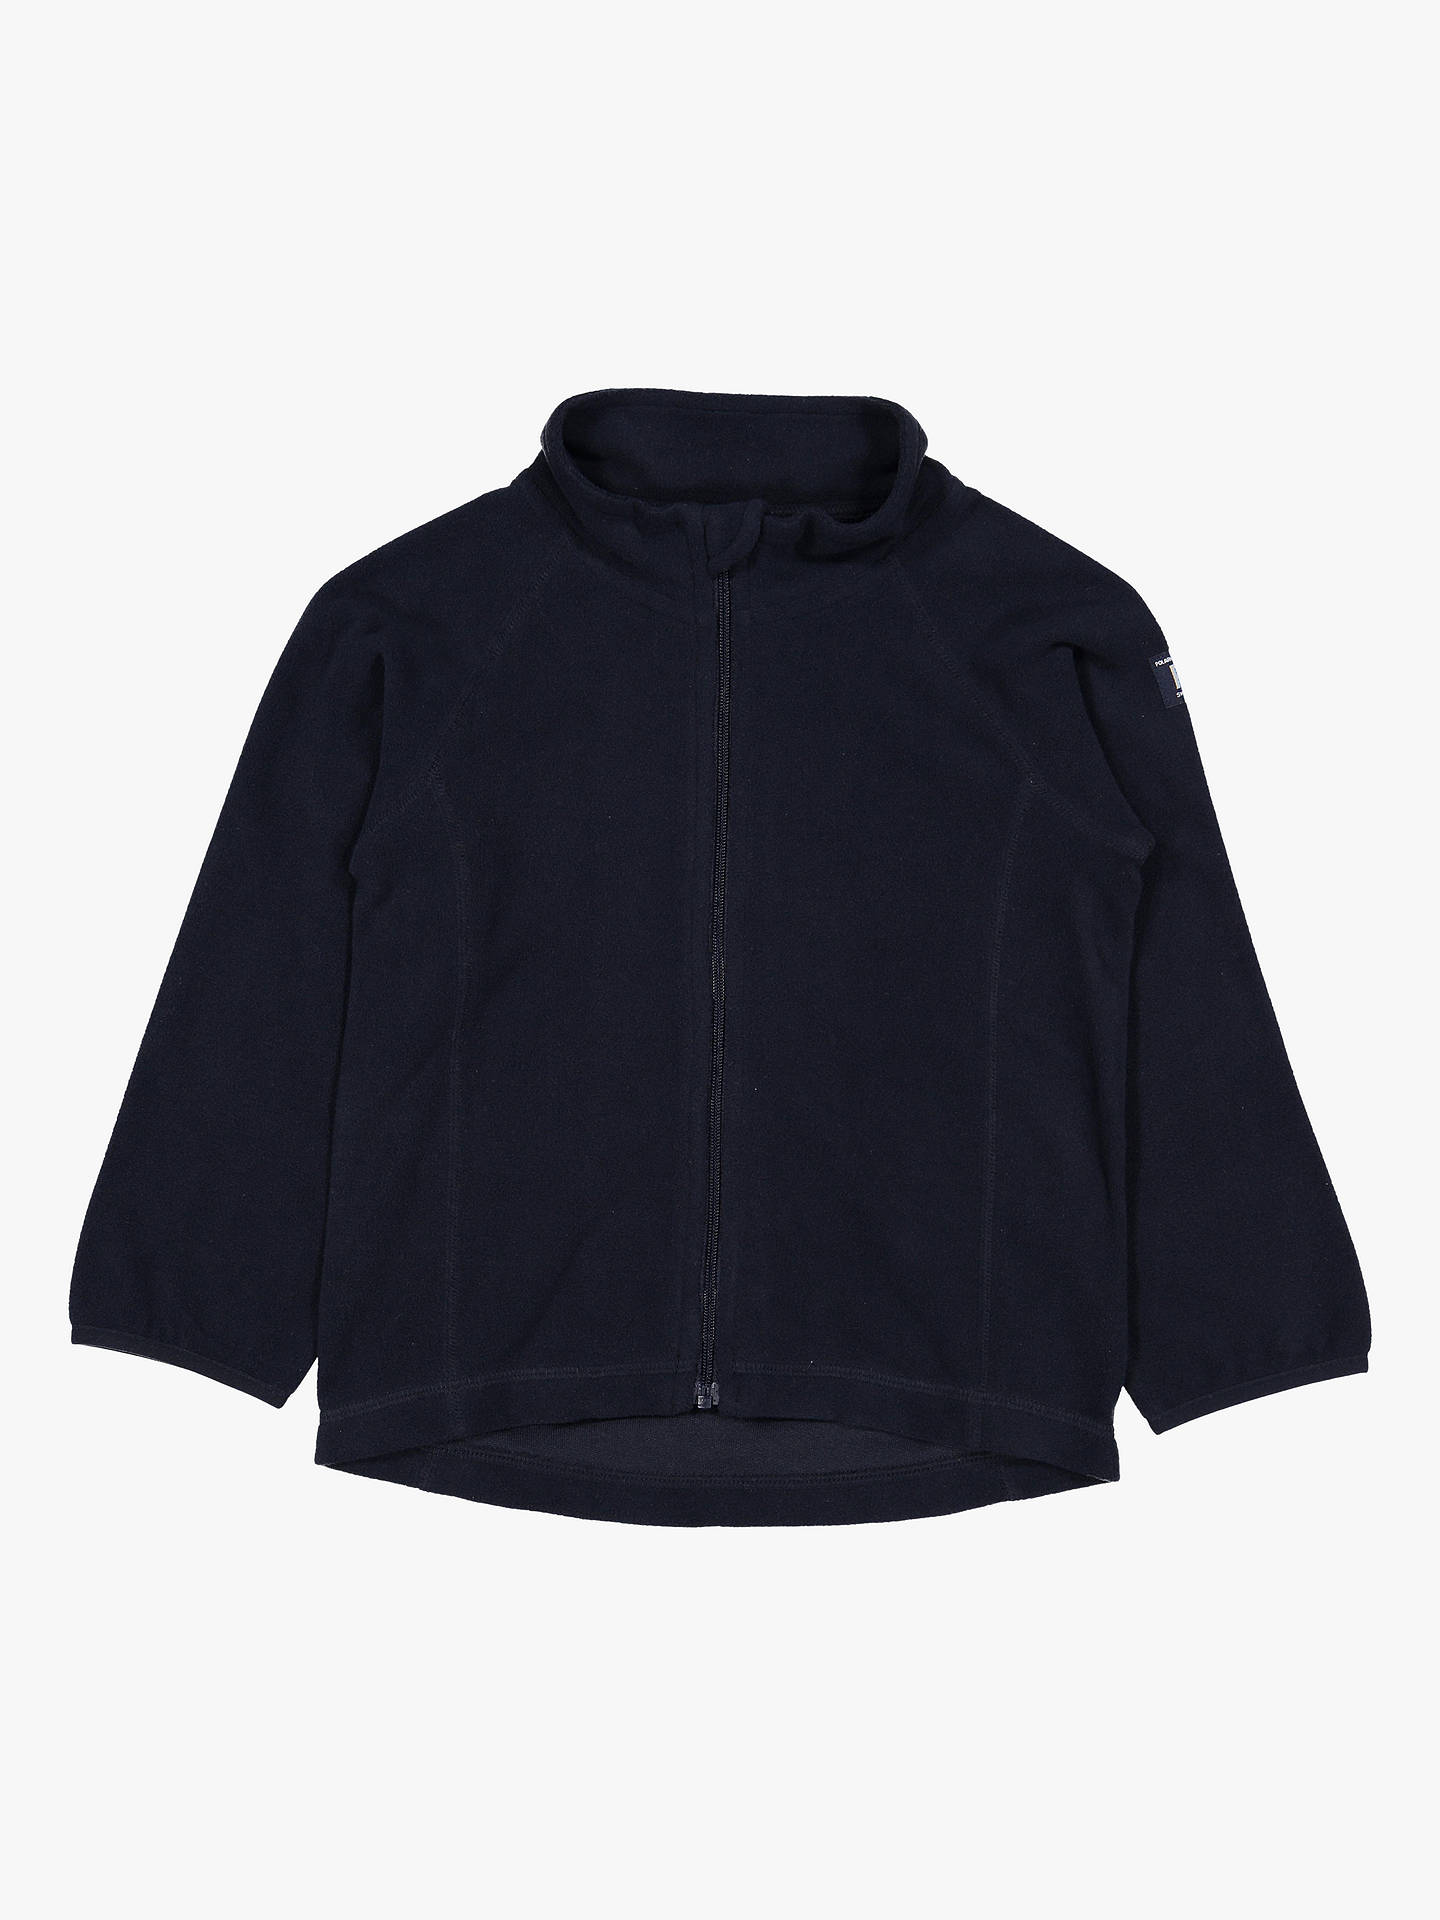 Buy Polarn O. Pyret Baby Zip Fleece Jacket, Blue, 12-24 months Online at johnlewis.com